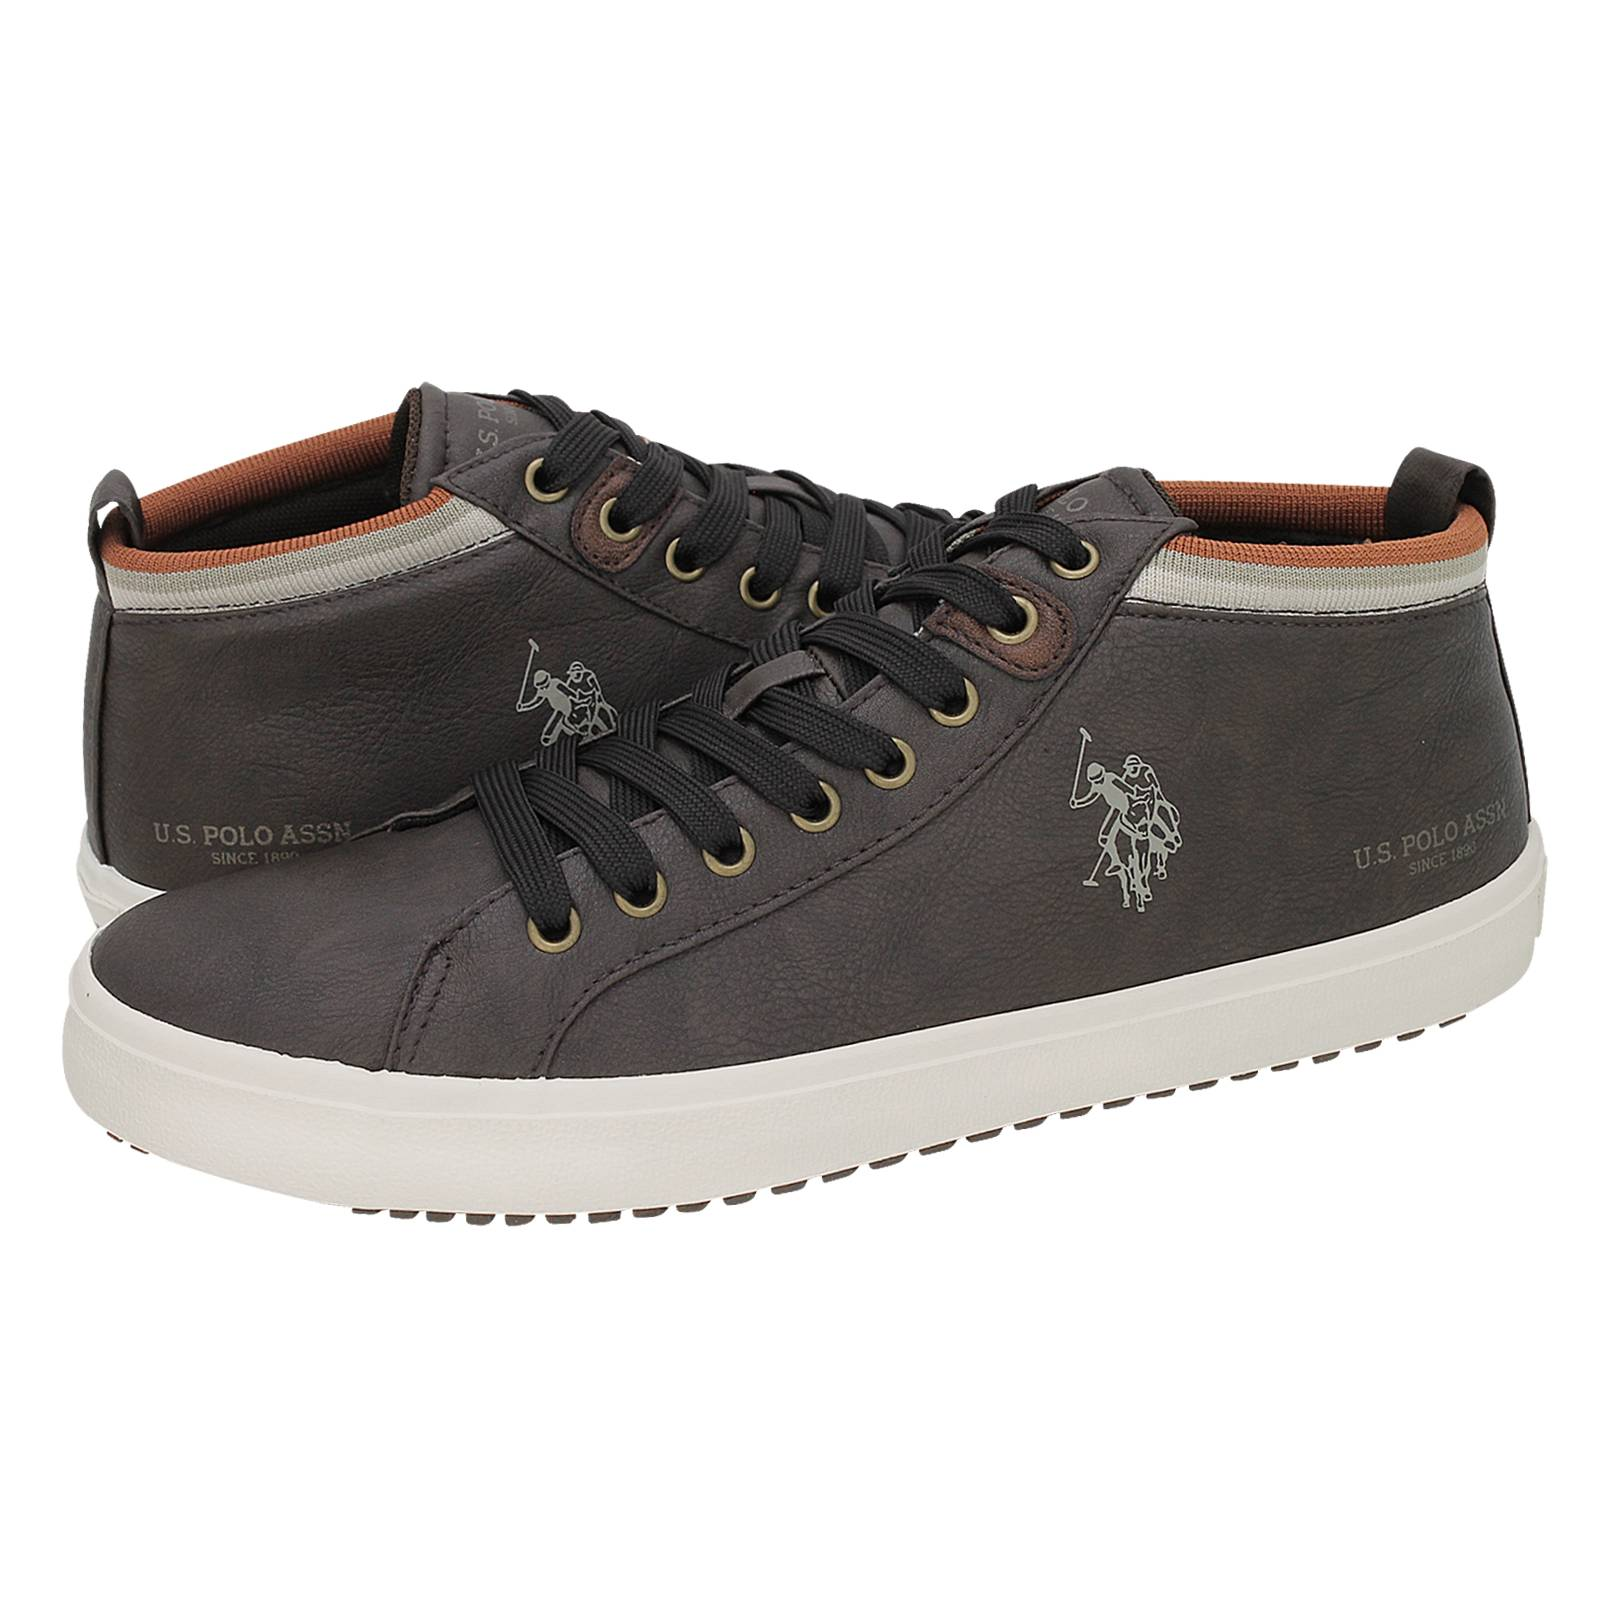 U.S. Polo ASSN Men's casual low boots